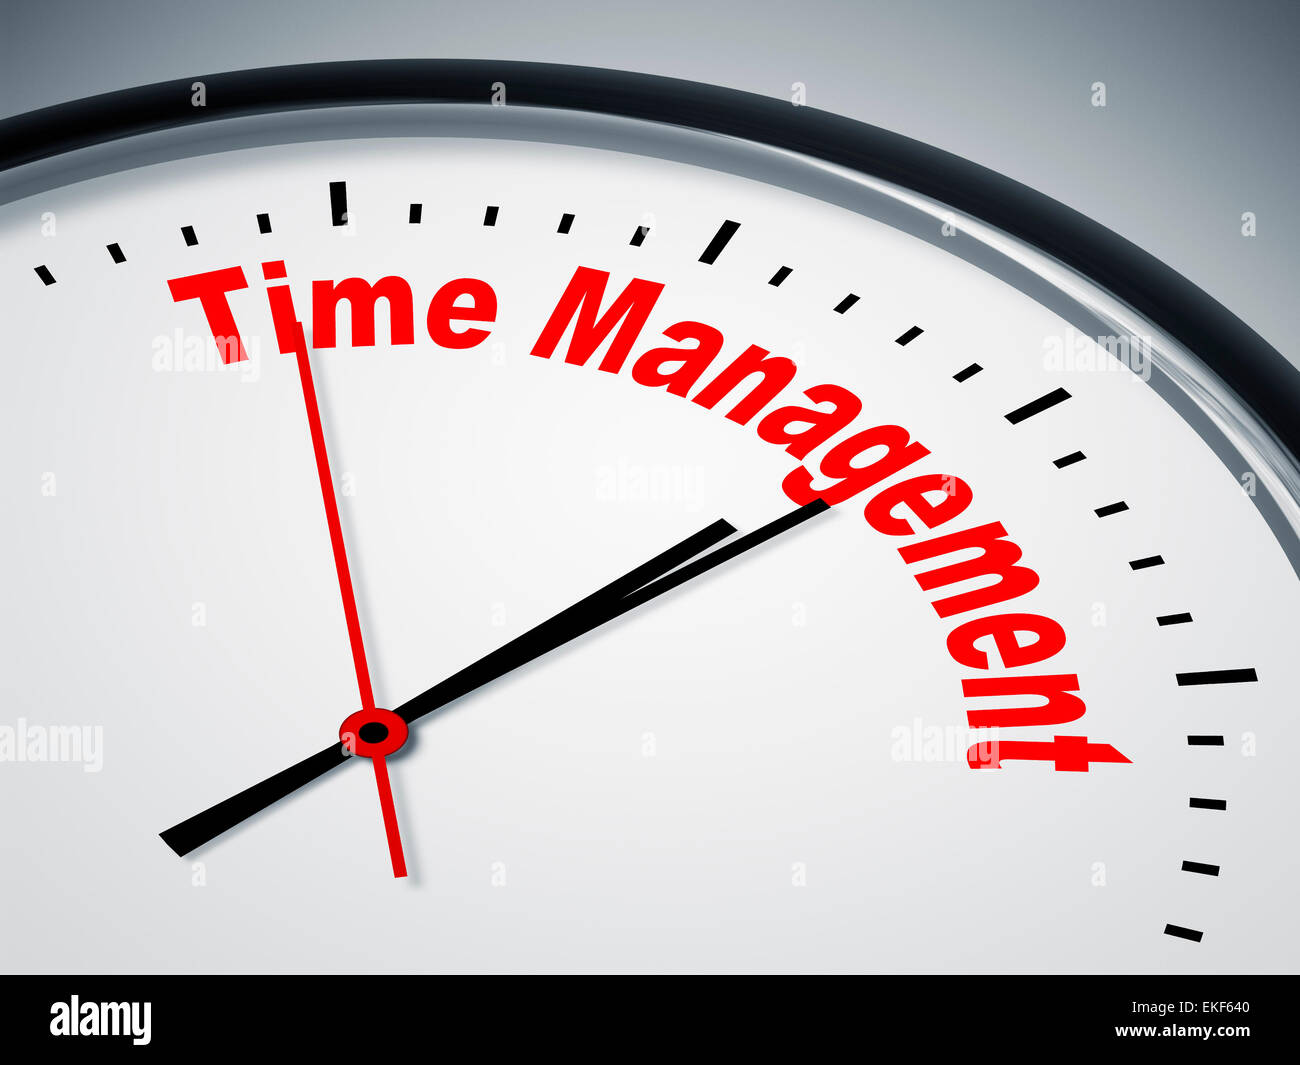 Time Management - Stock Image